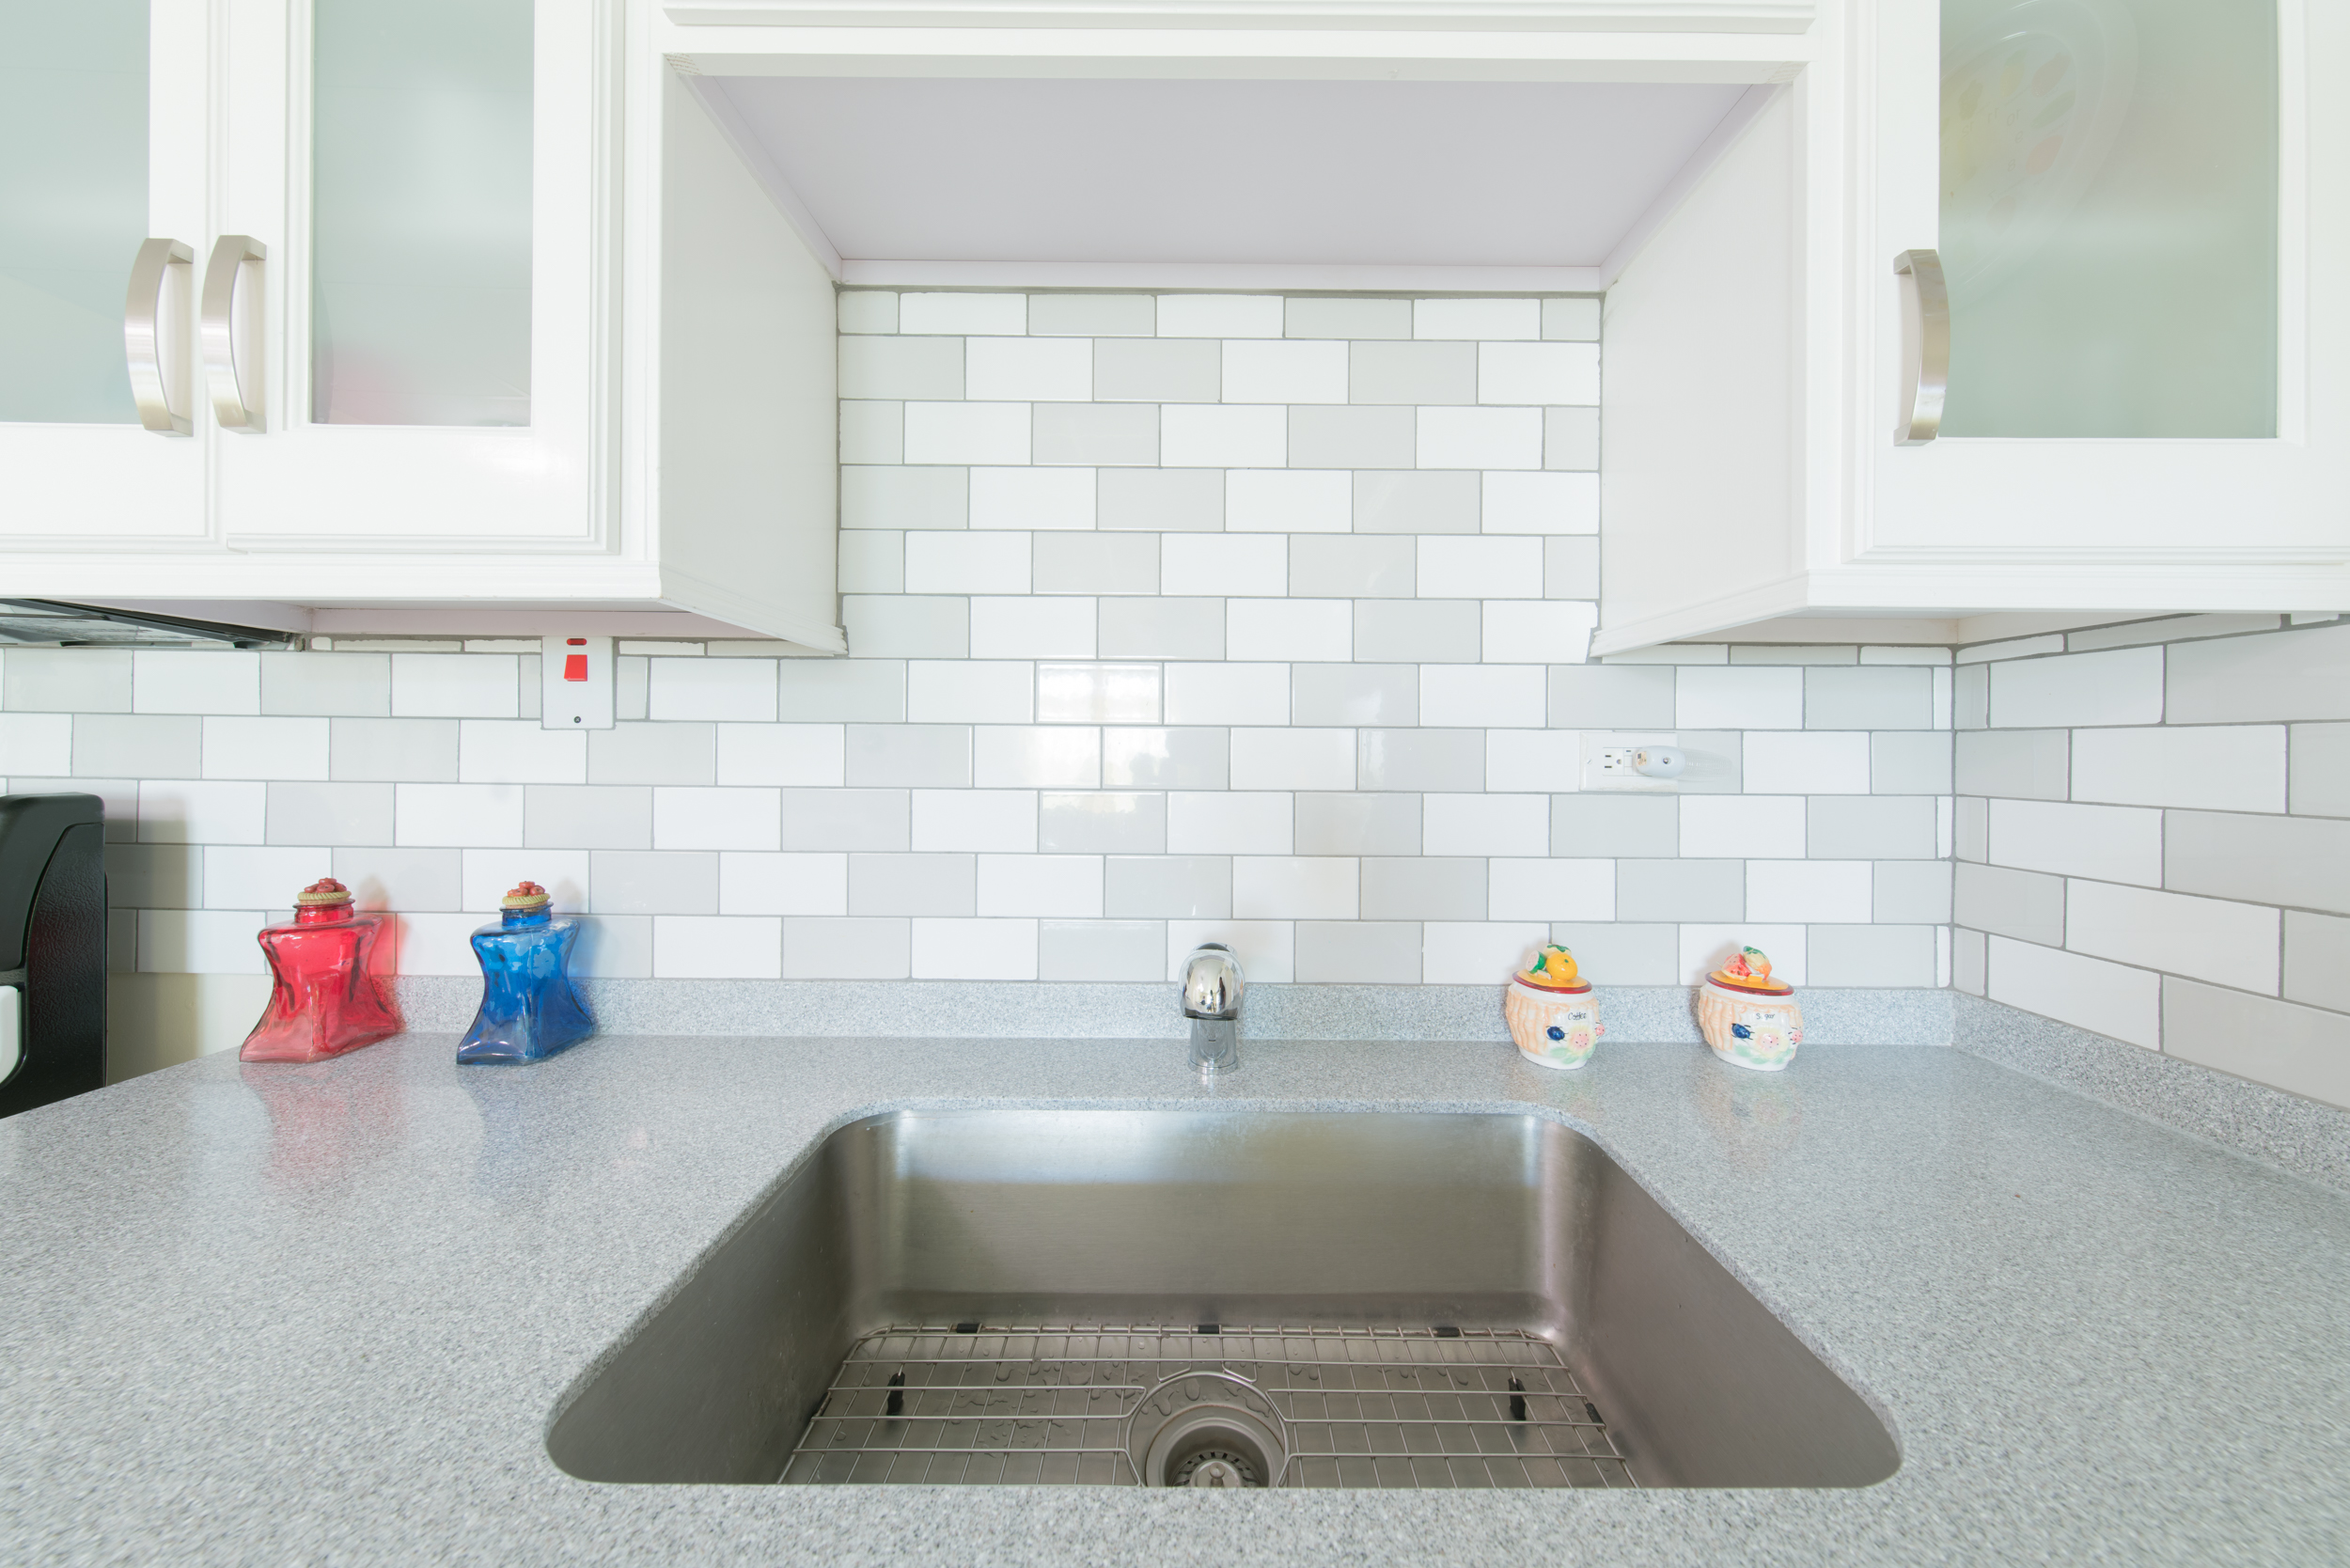 Wall Units Countertop and Sink